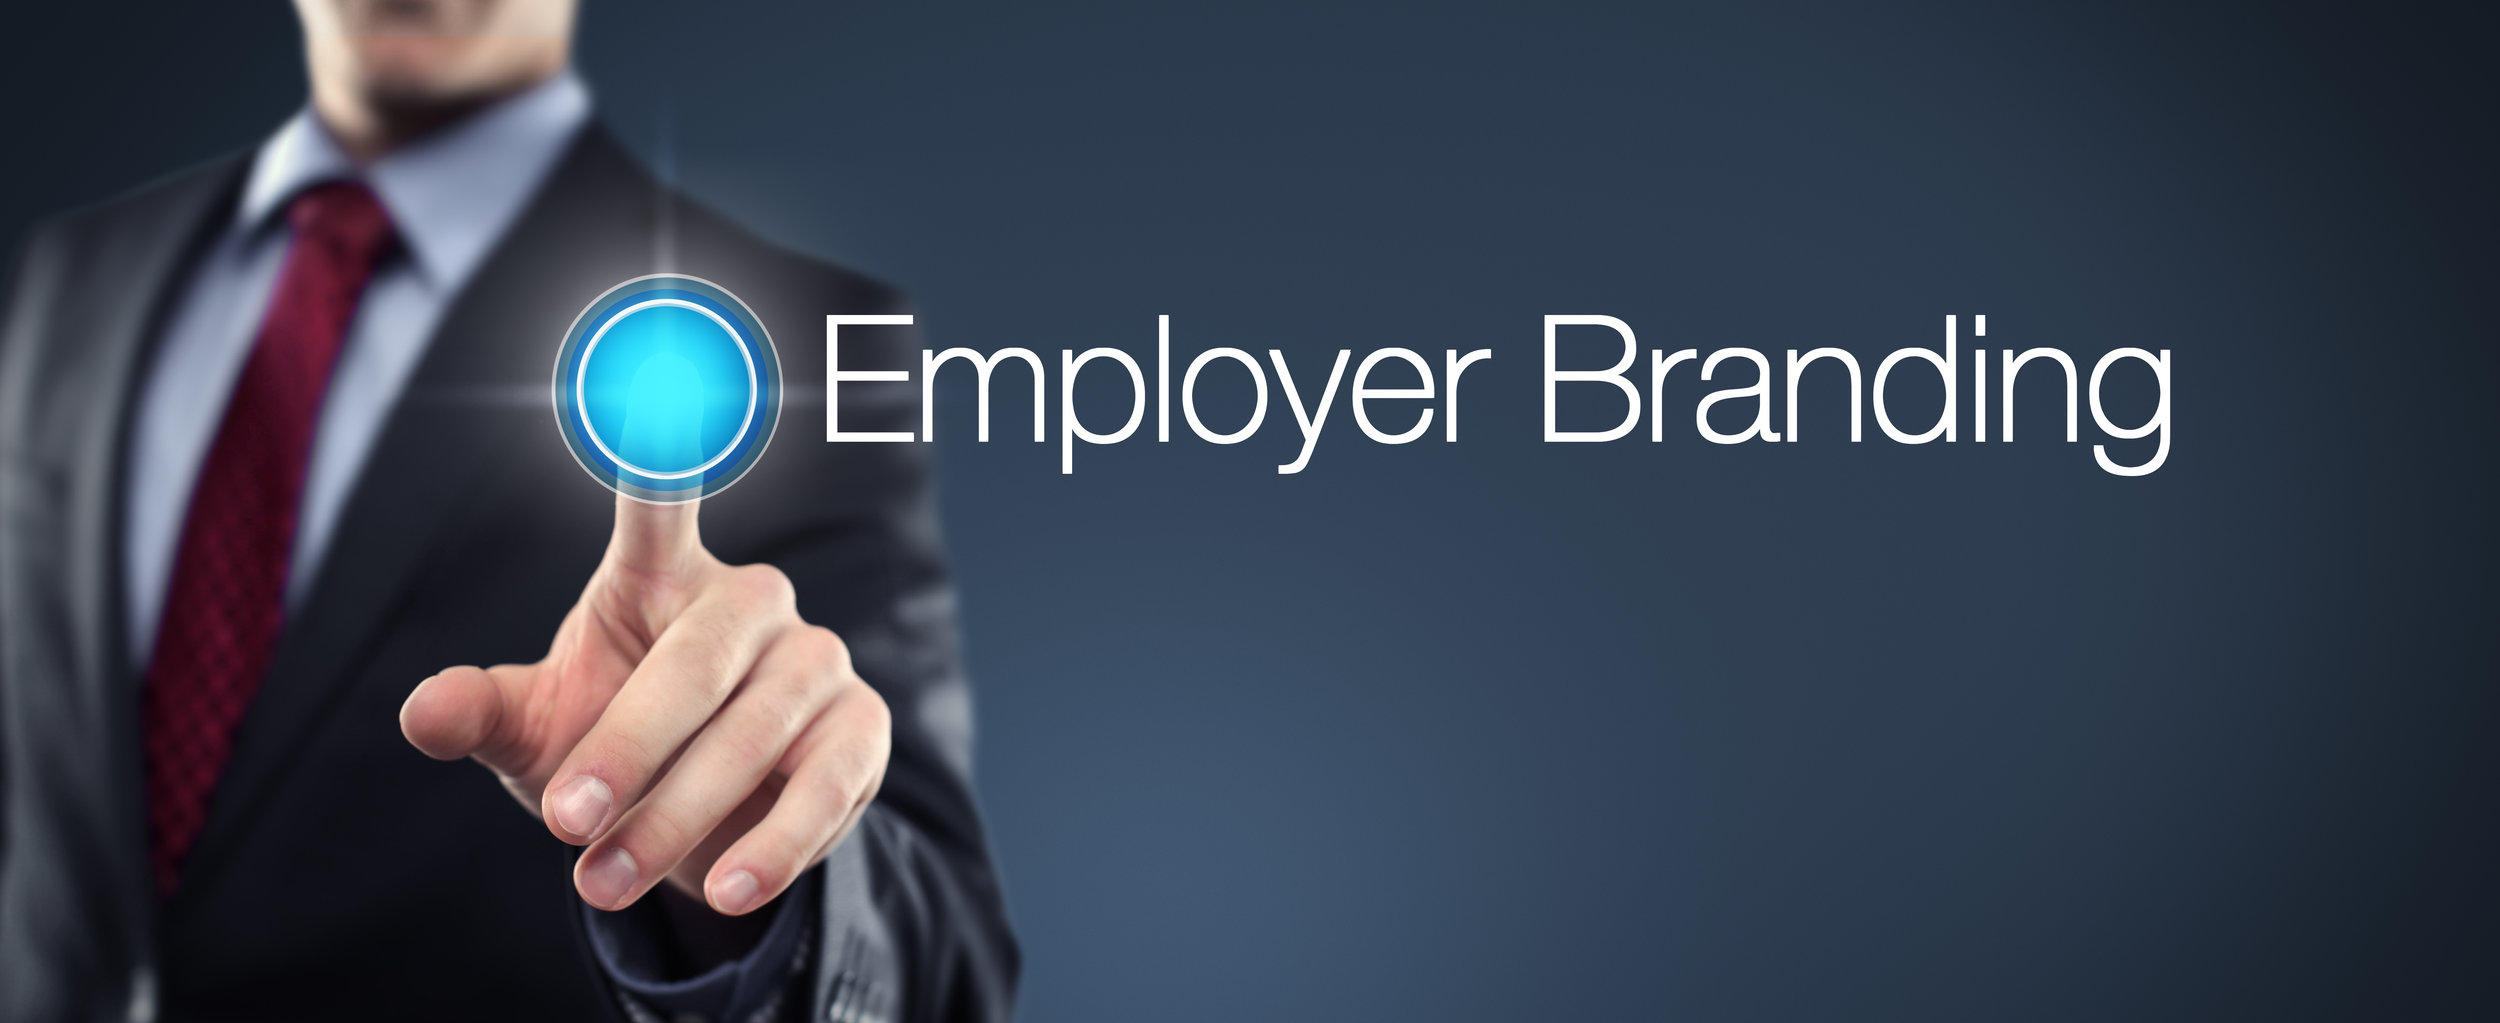 Employer Branding - How to re-think and re-strategize your employer brand perspective.